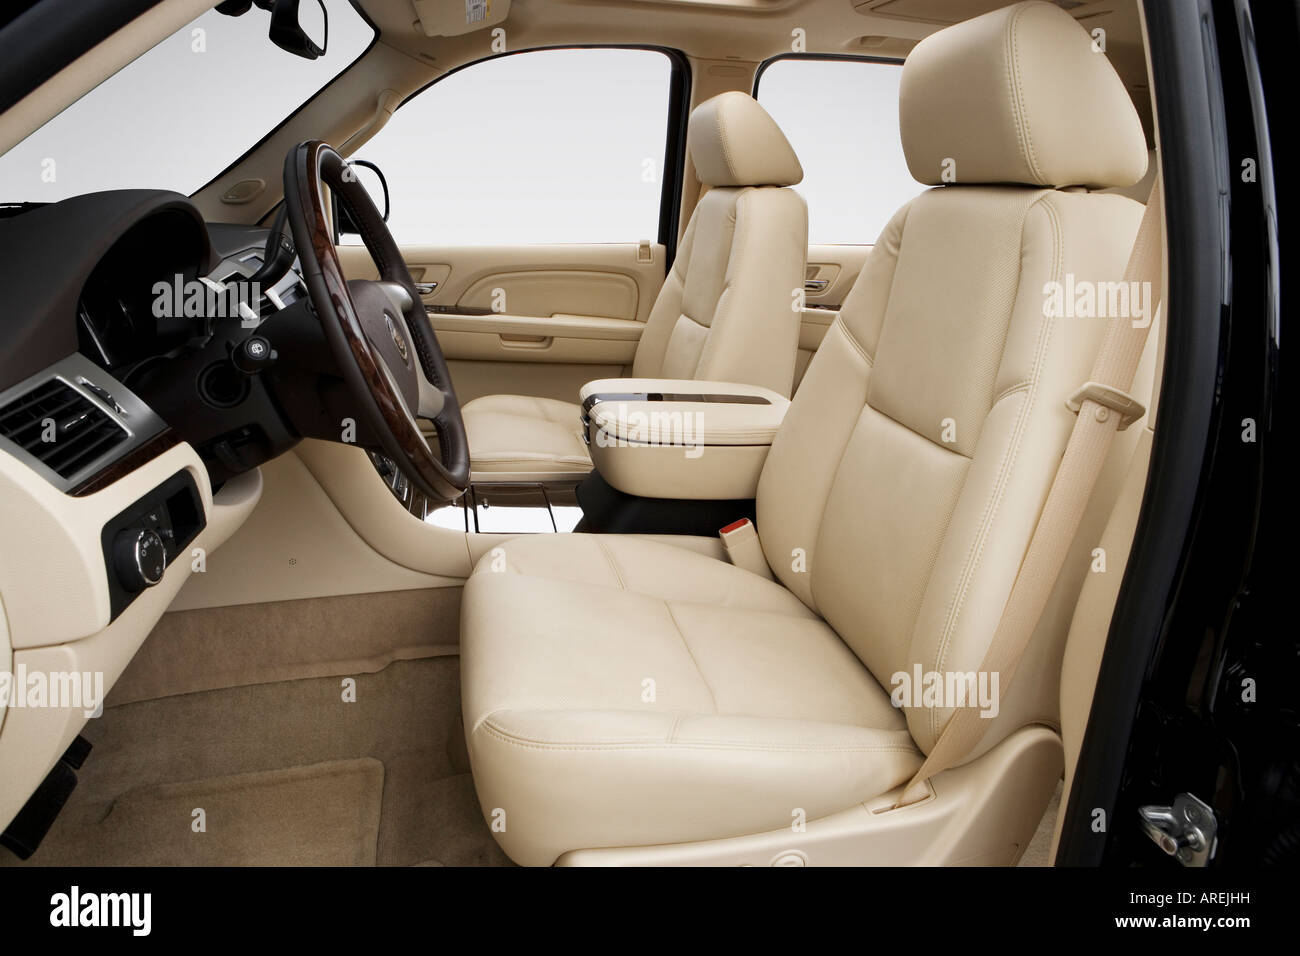 hight resolution of 2007 cadillac escalade esv in black front seats stock image